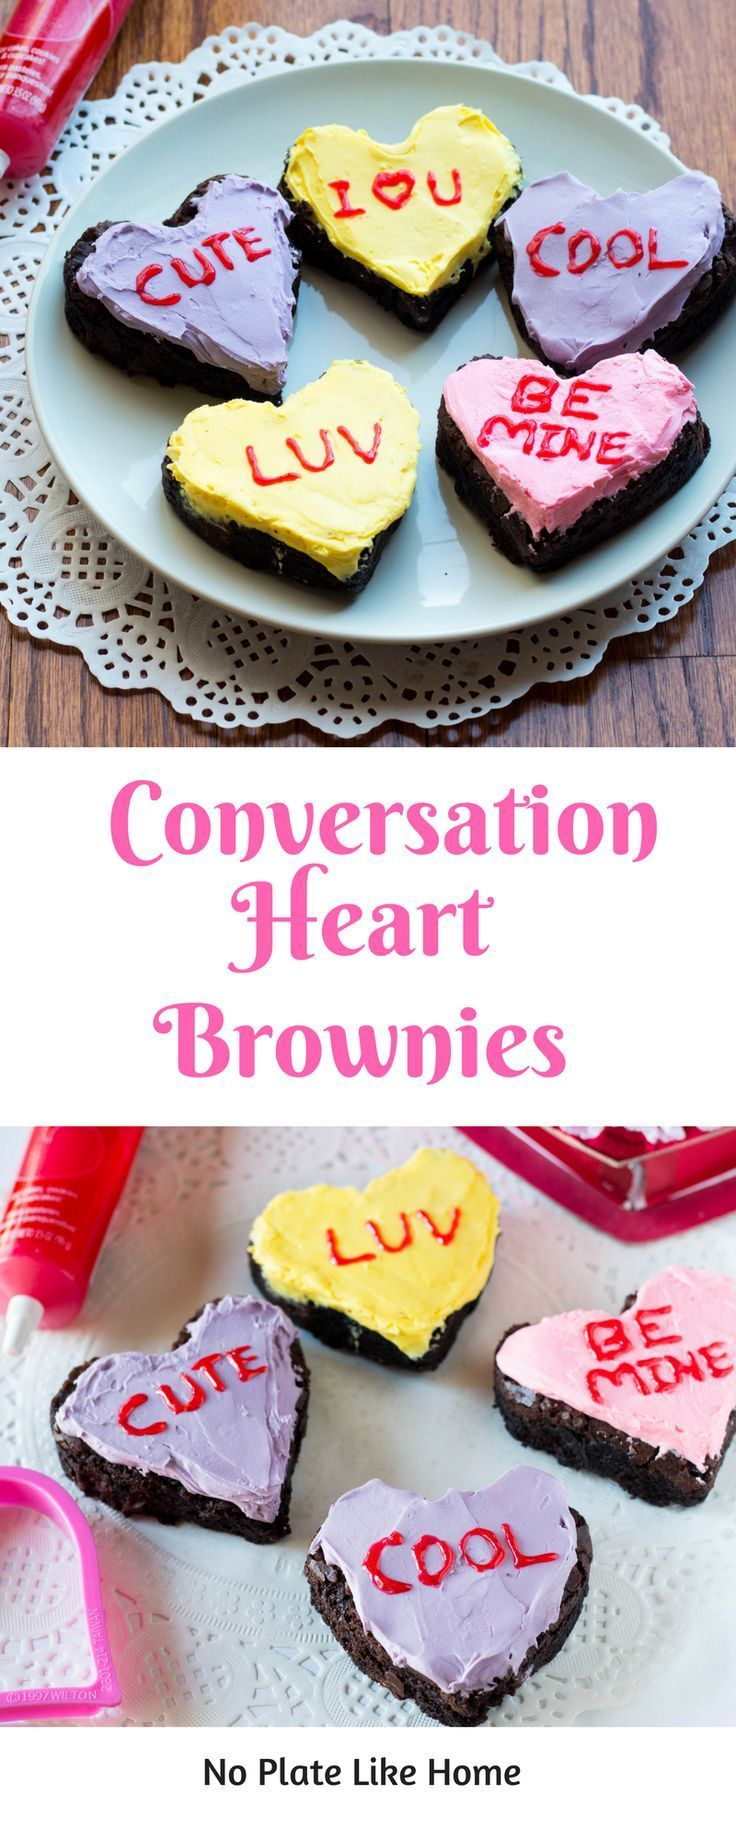 "Conversation Heart Brownies are a cute way to say ""I love you"" for Valentine's Day or get creative with Marry Me? or Prom? Personalize your own Valentine's treats and have fun with decorating! From scratch recipe included. You won't forget these sweets. Pin for later!"